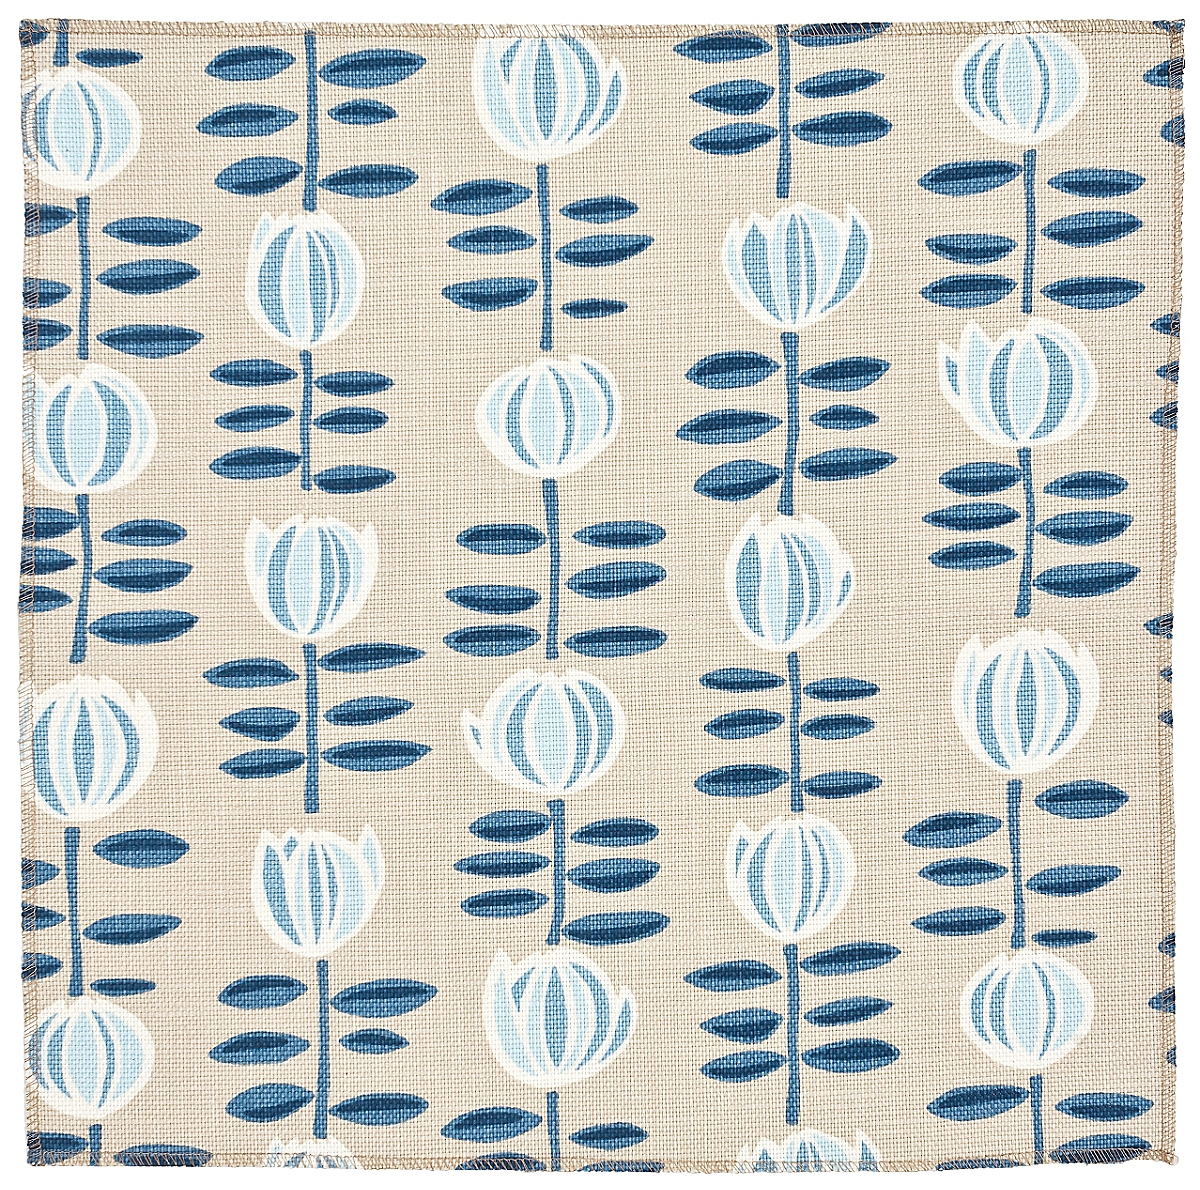 Mayflower: Ivory (fabric yardage)